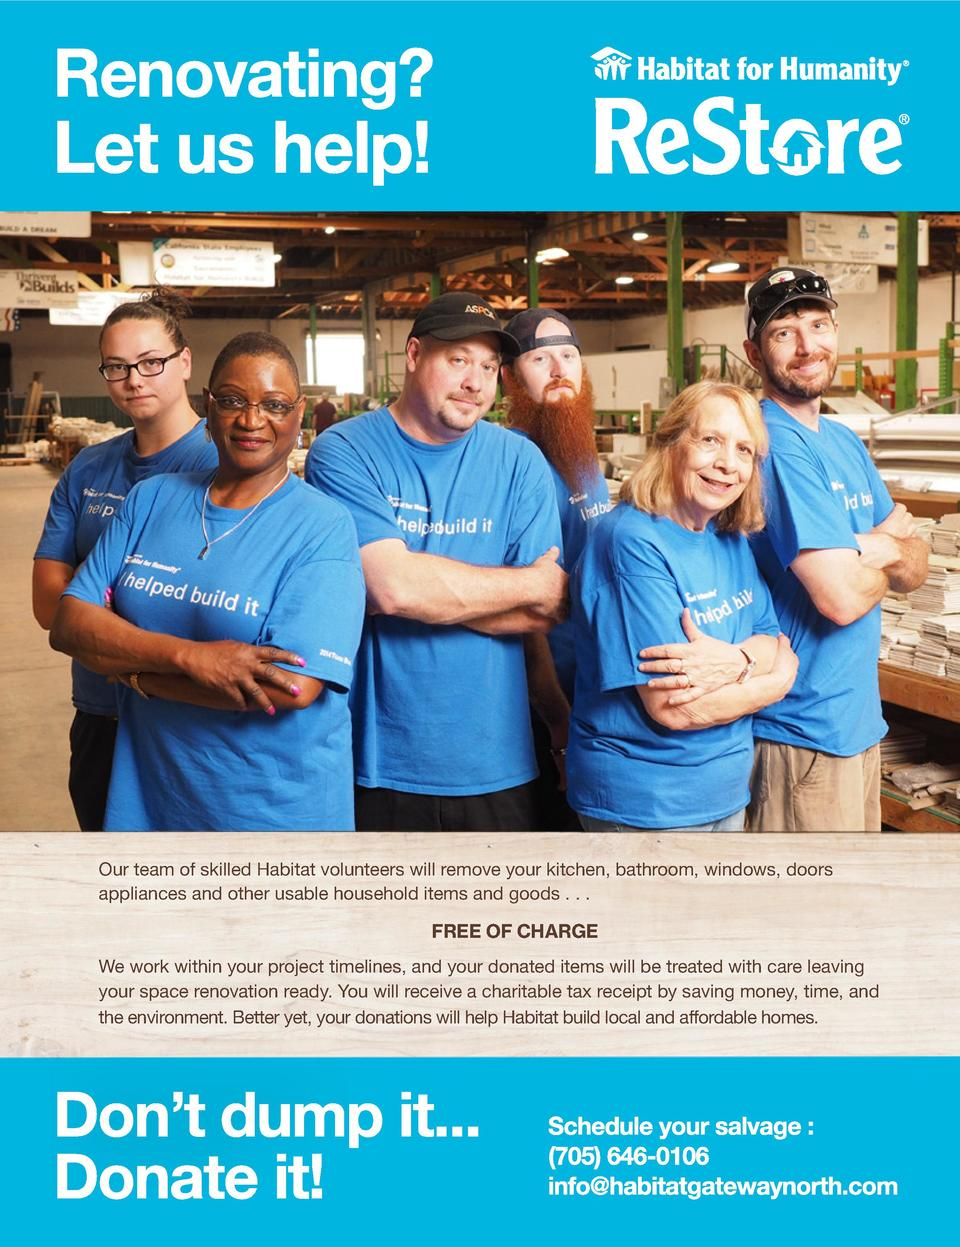 FULL PAGE Habitat for Humanity  Our team of skilled Habitat volunteers will remove your kitchen, bathroom, windows, doors ...